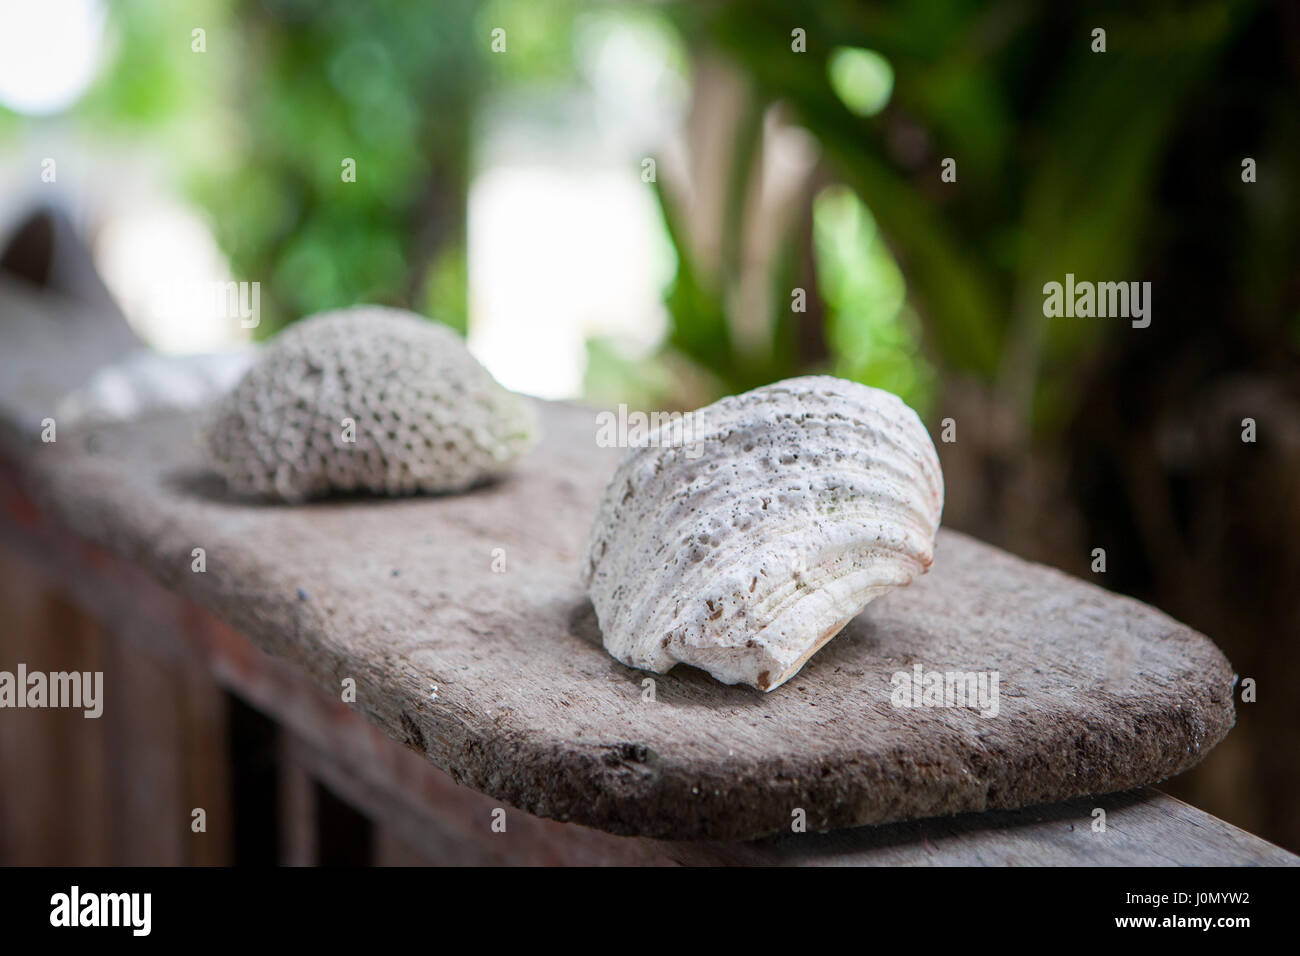 White natural coral interior on wooden surface and beautiful way to decorate a room Stock Photo